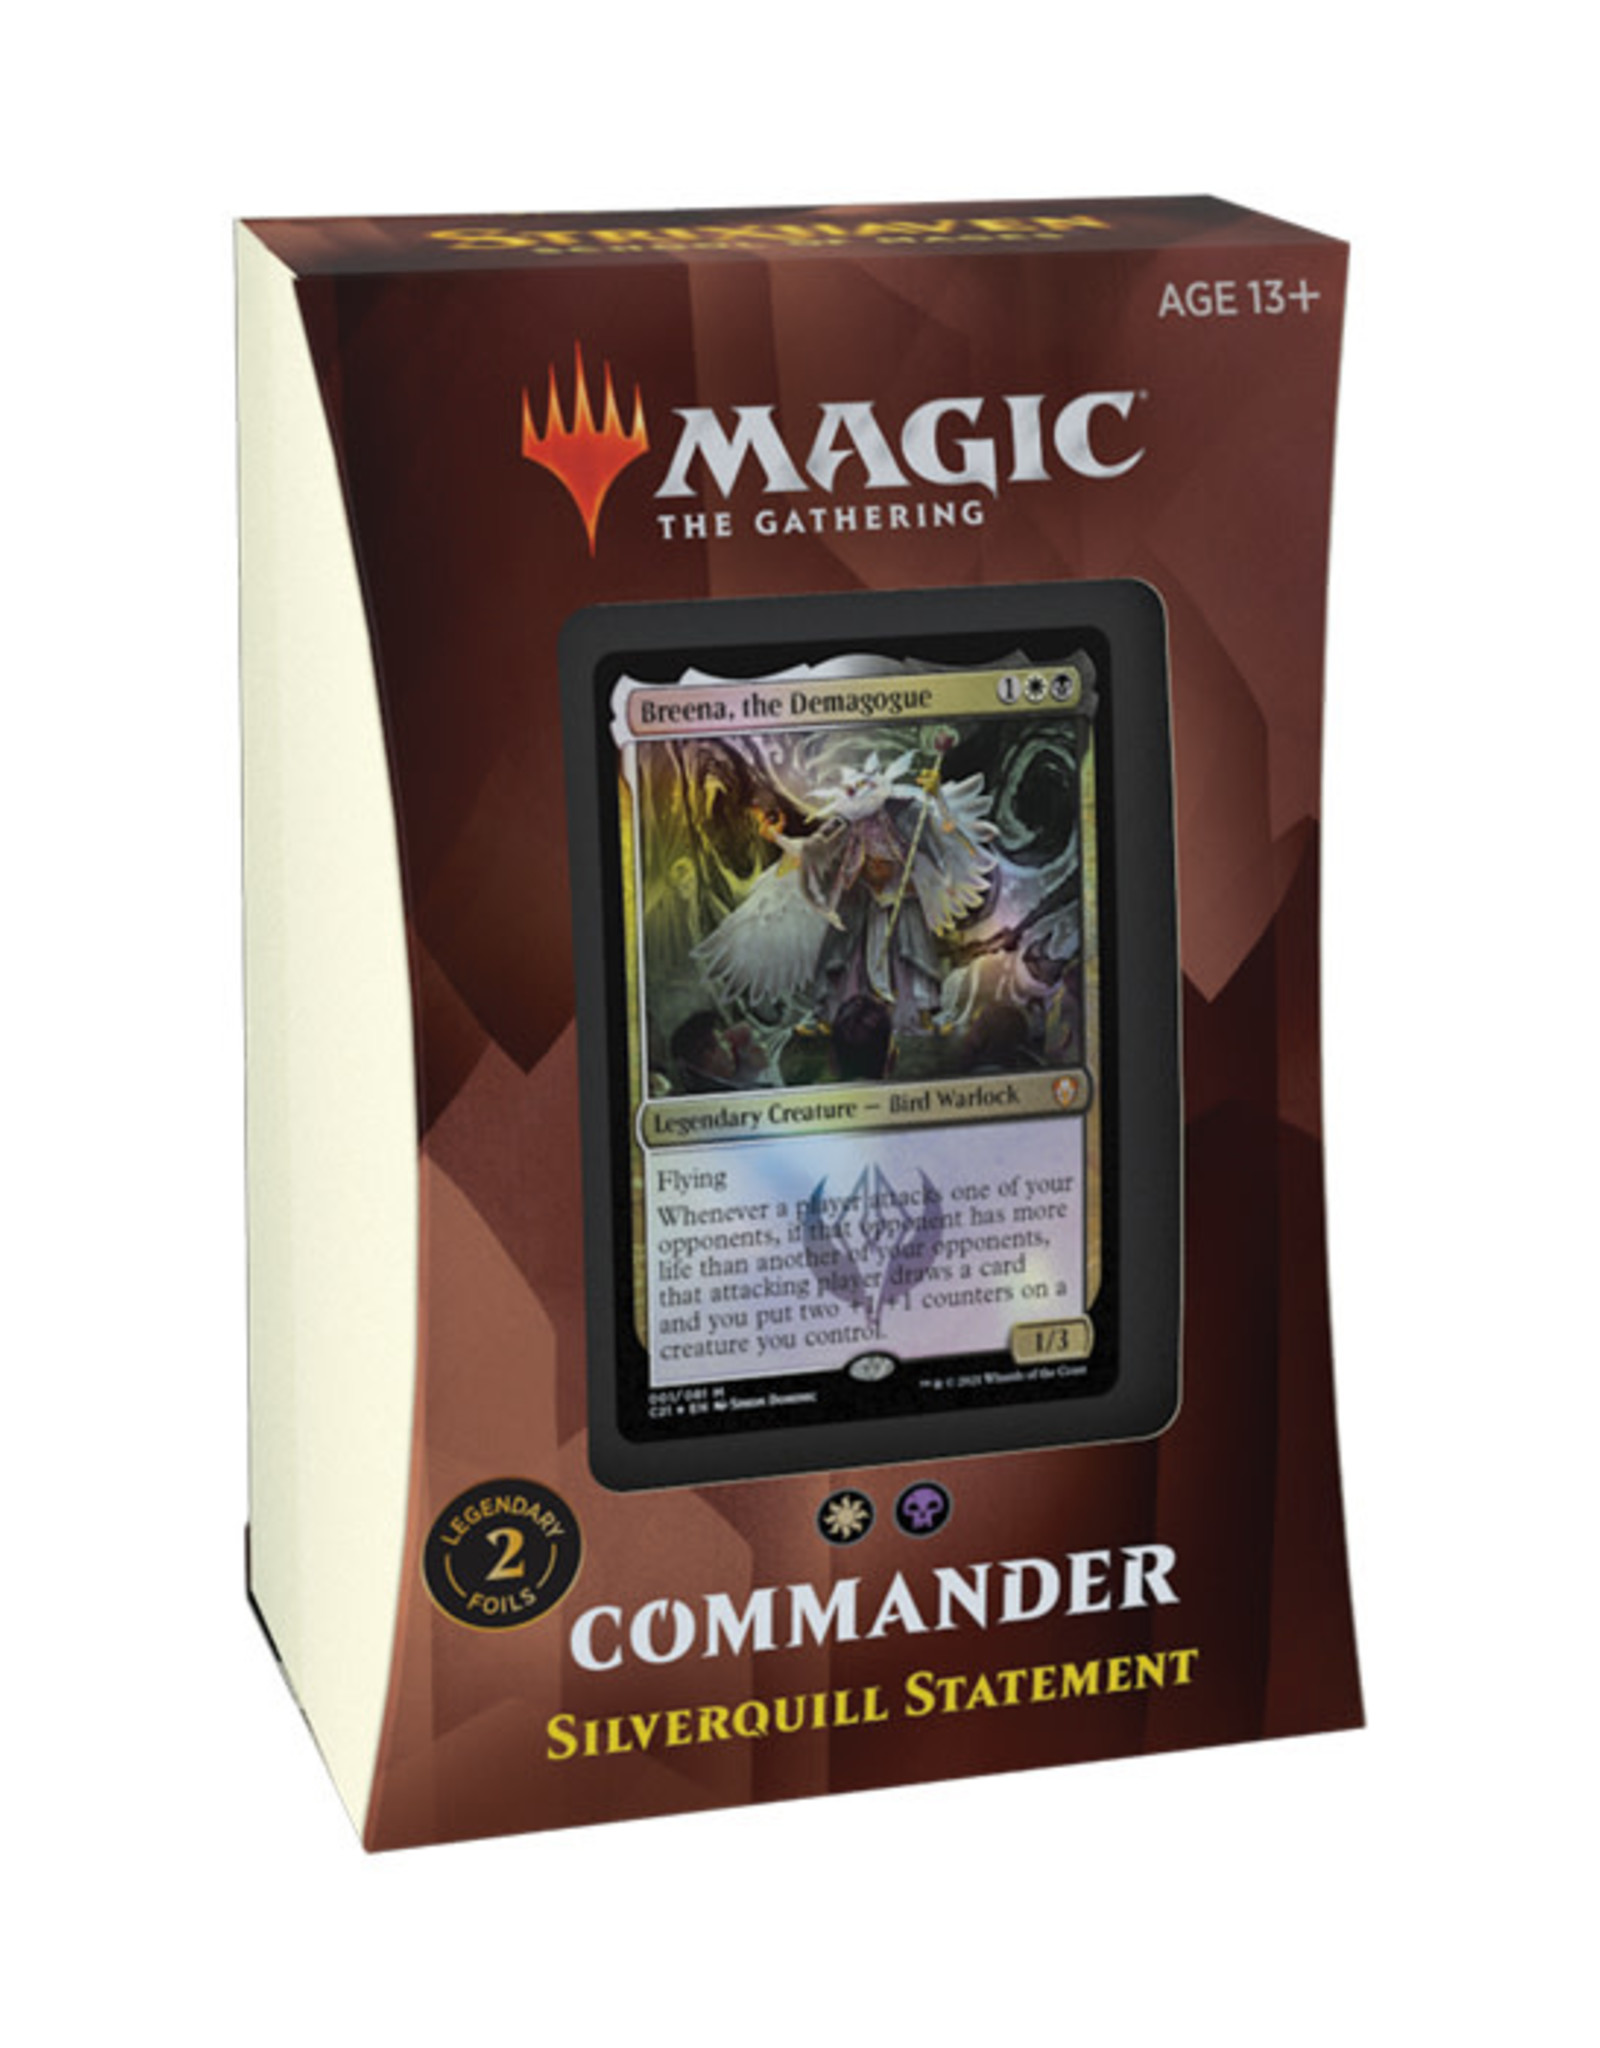 Magic: The Gathering Magic: The Gathering - Strixhaven - Commander Deck - Silverquill Statement